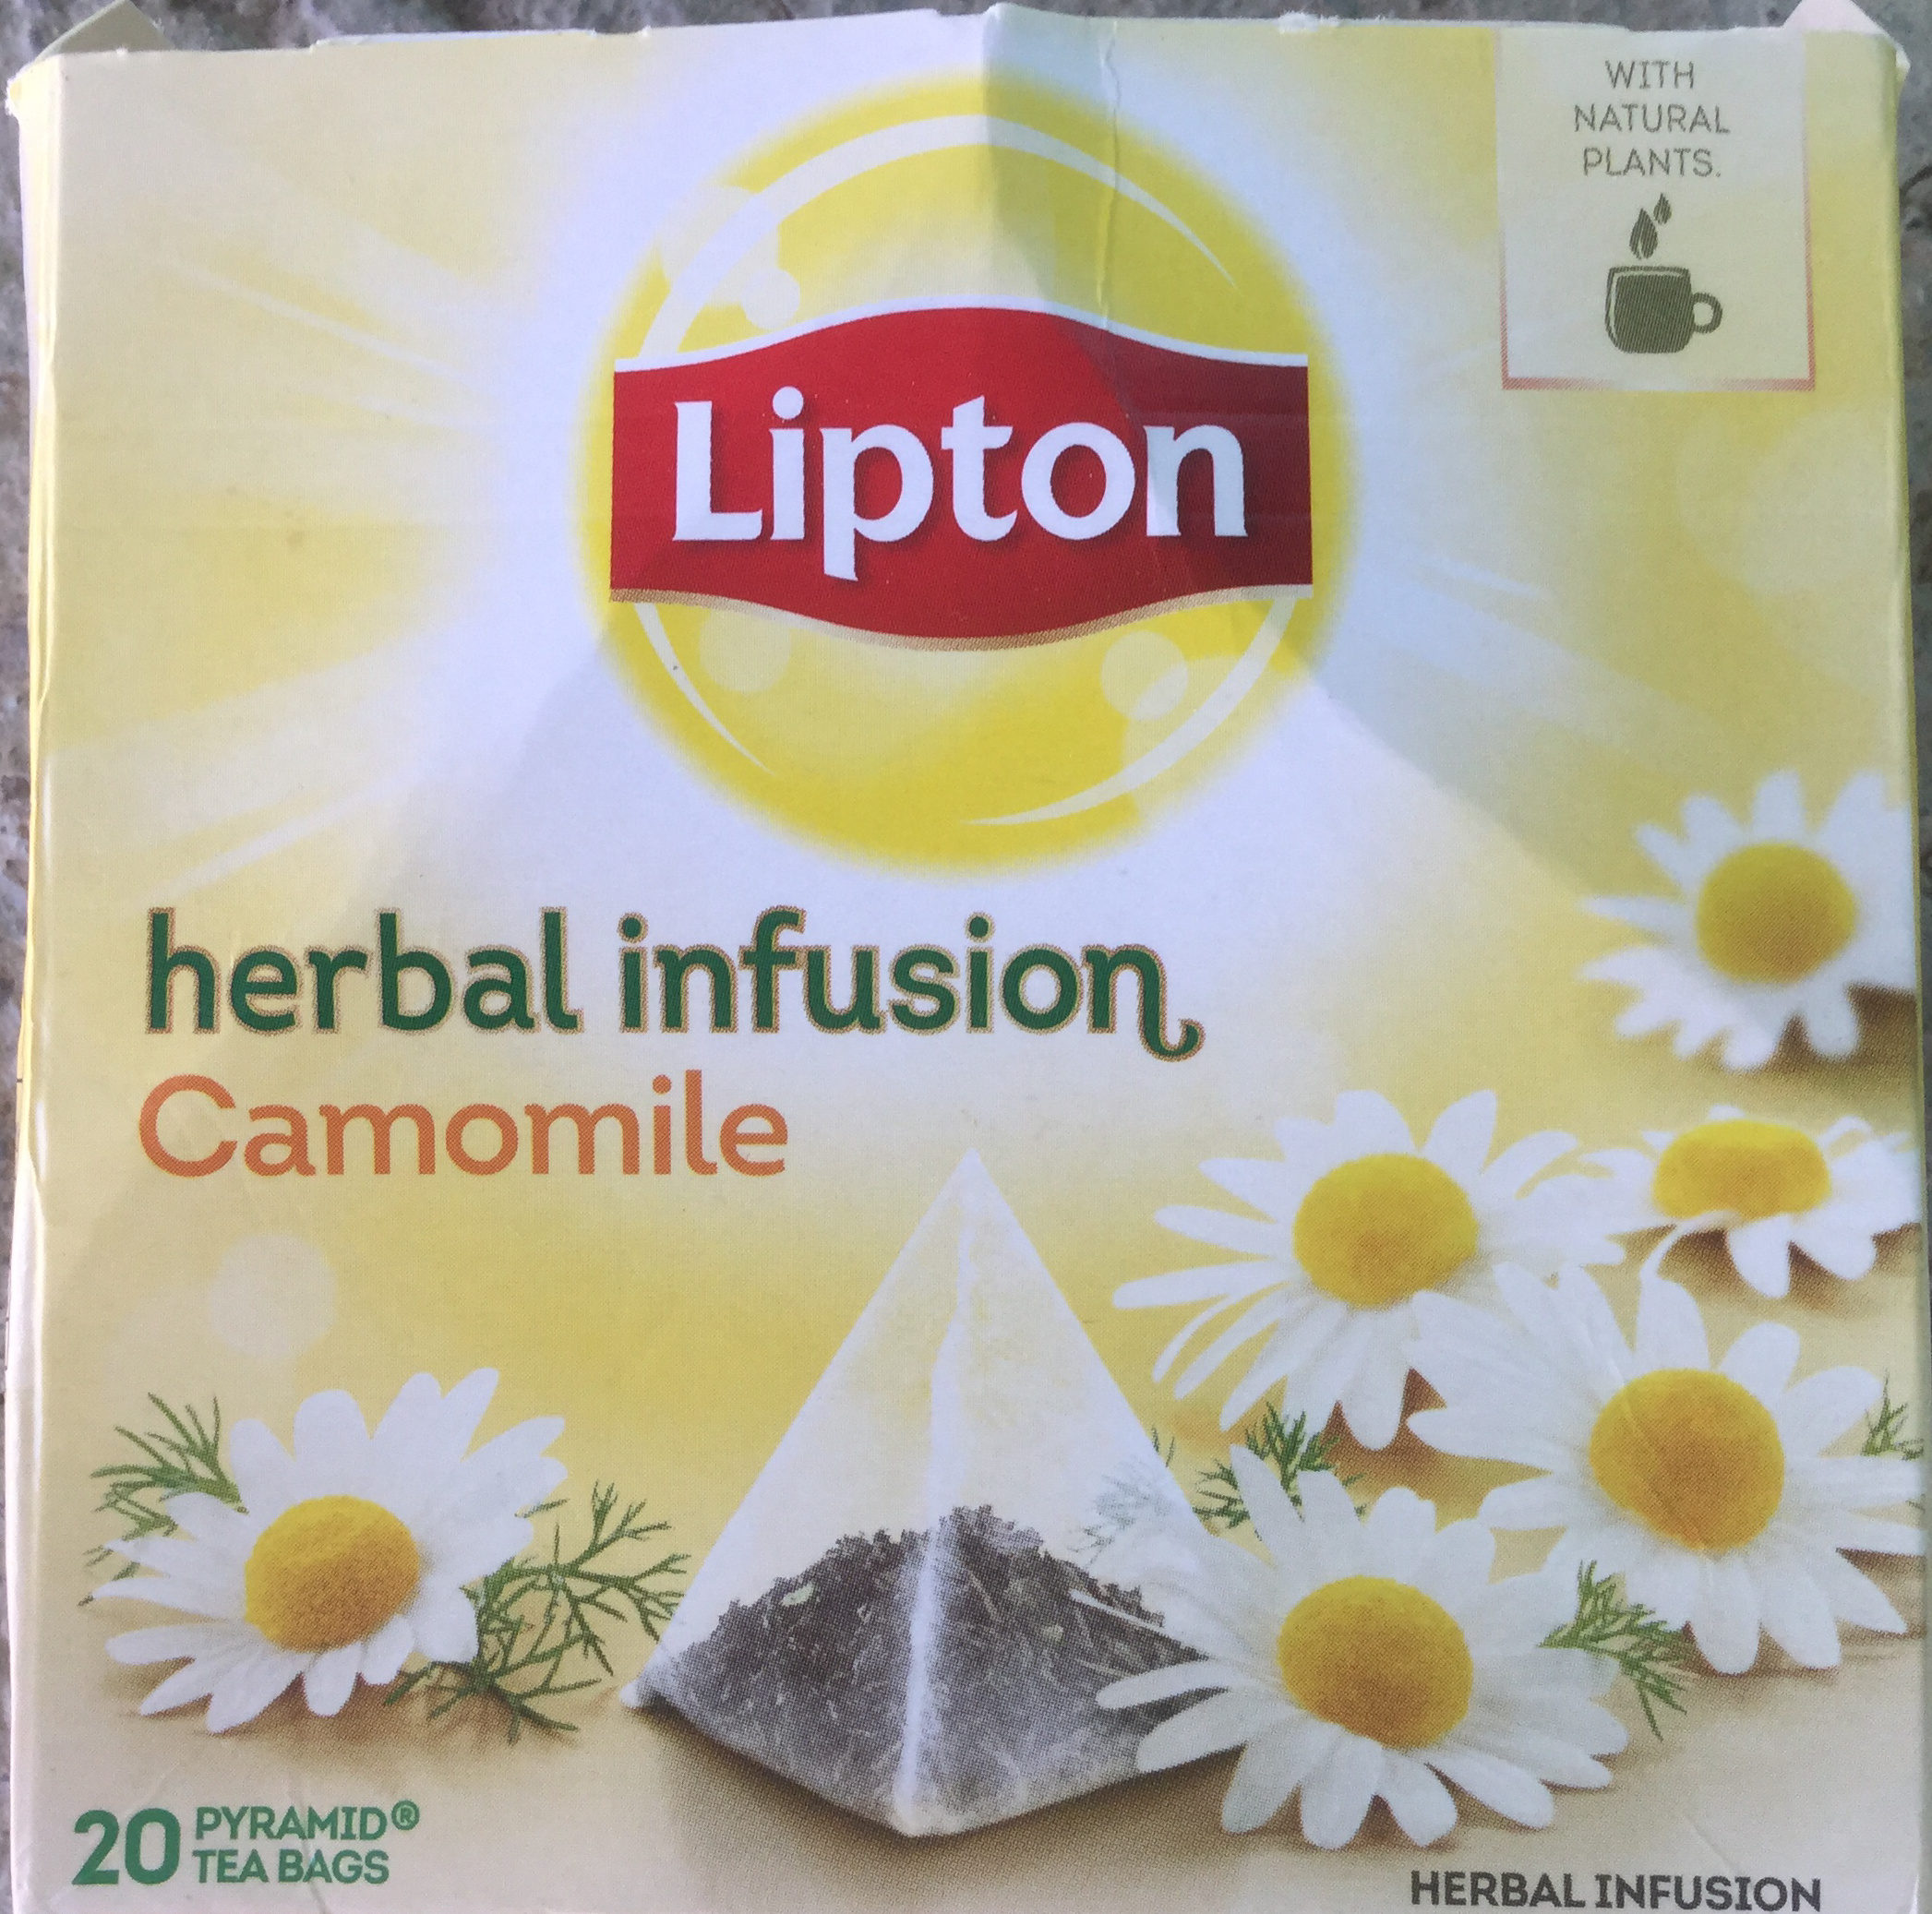 Herbal Infusion Camomile Tea Bags - Product